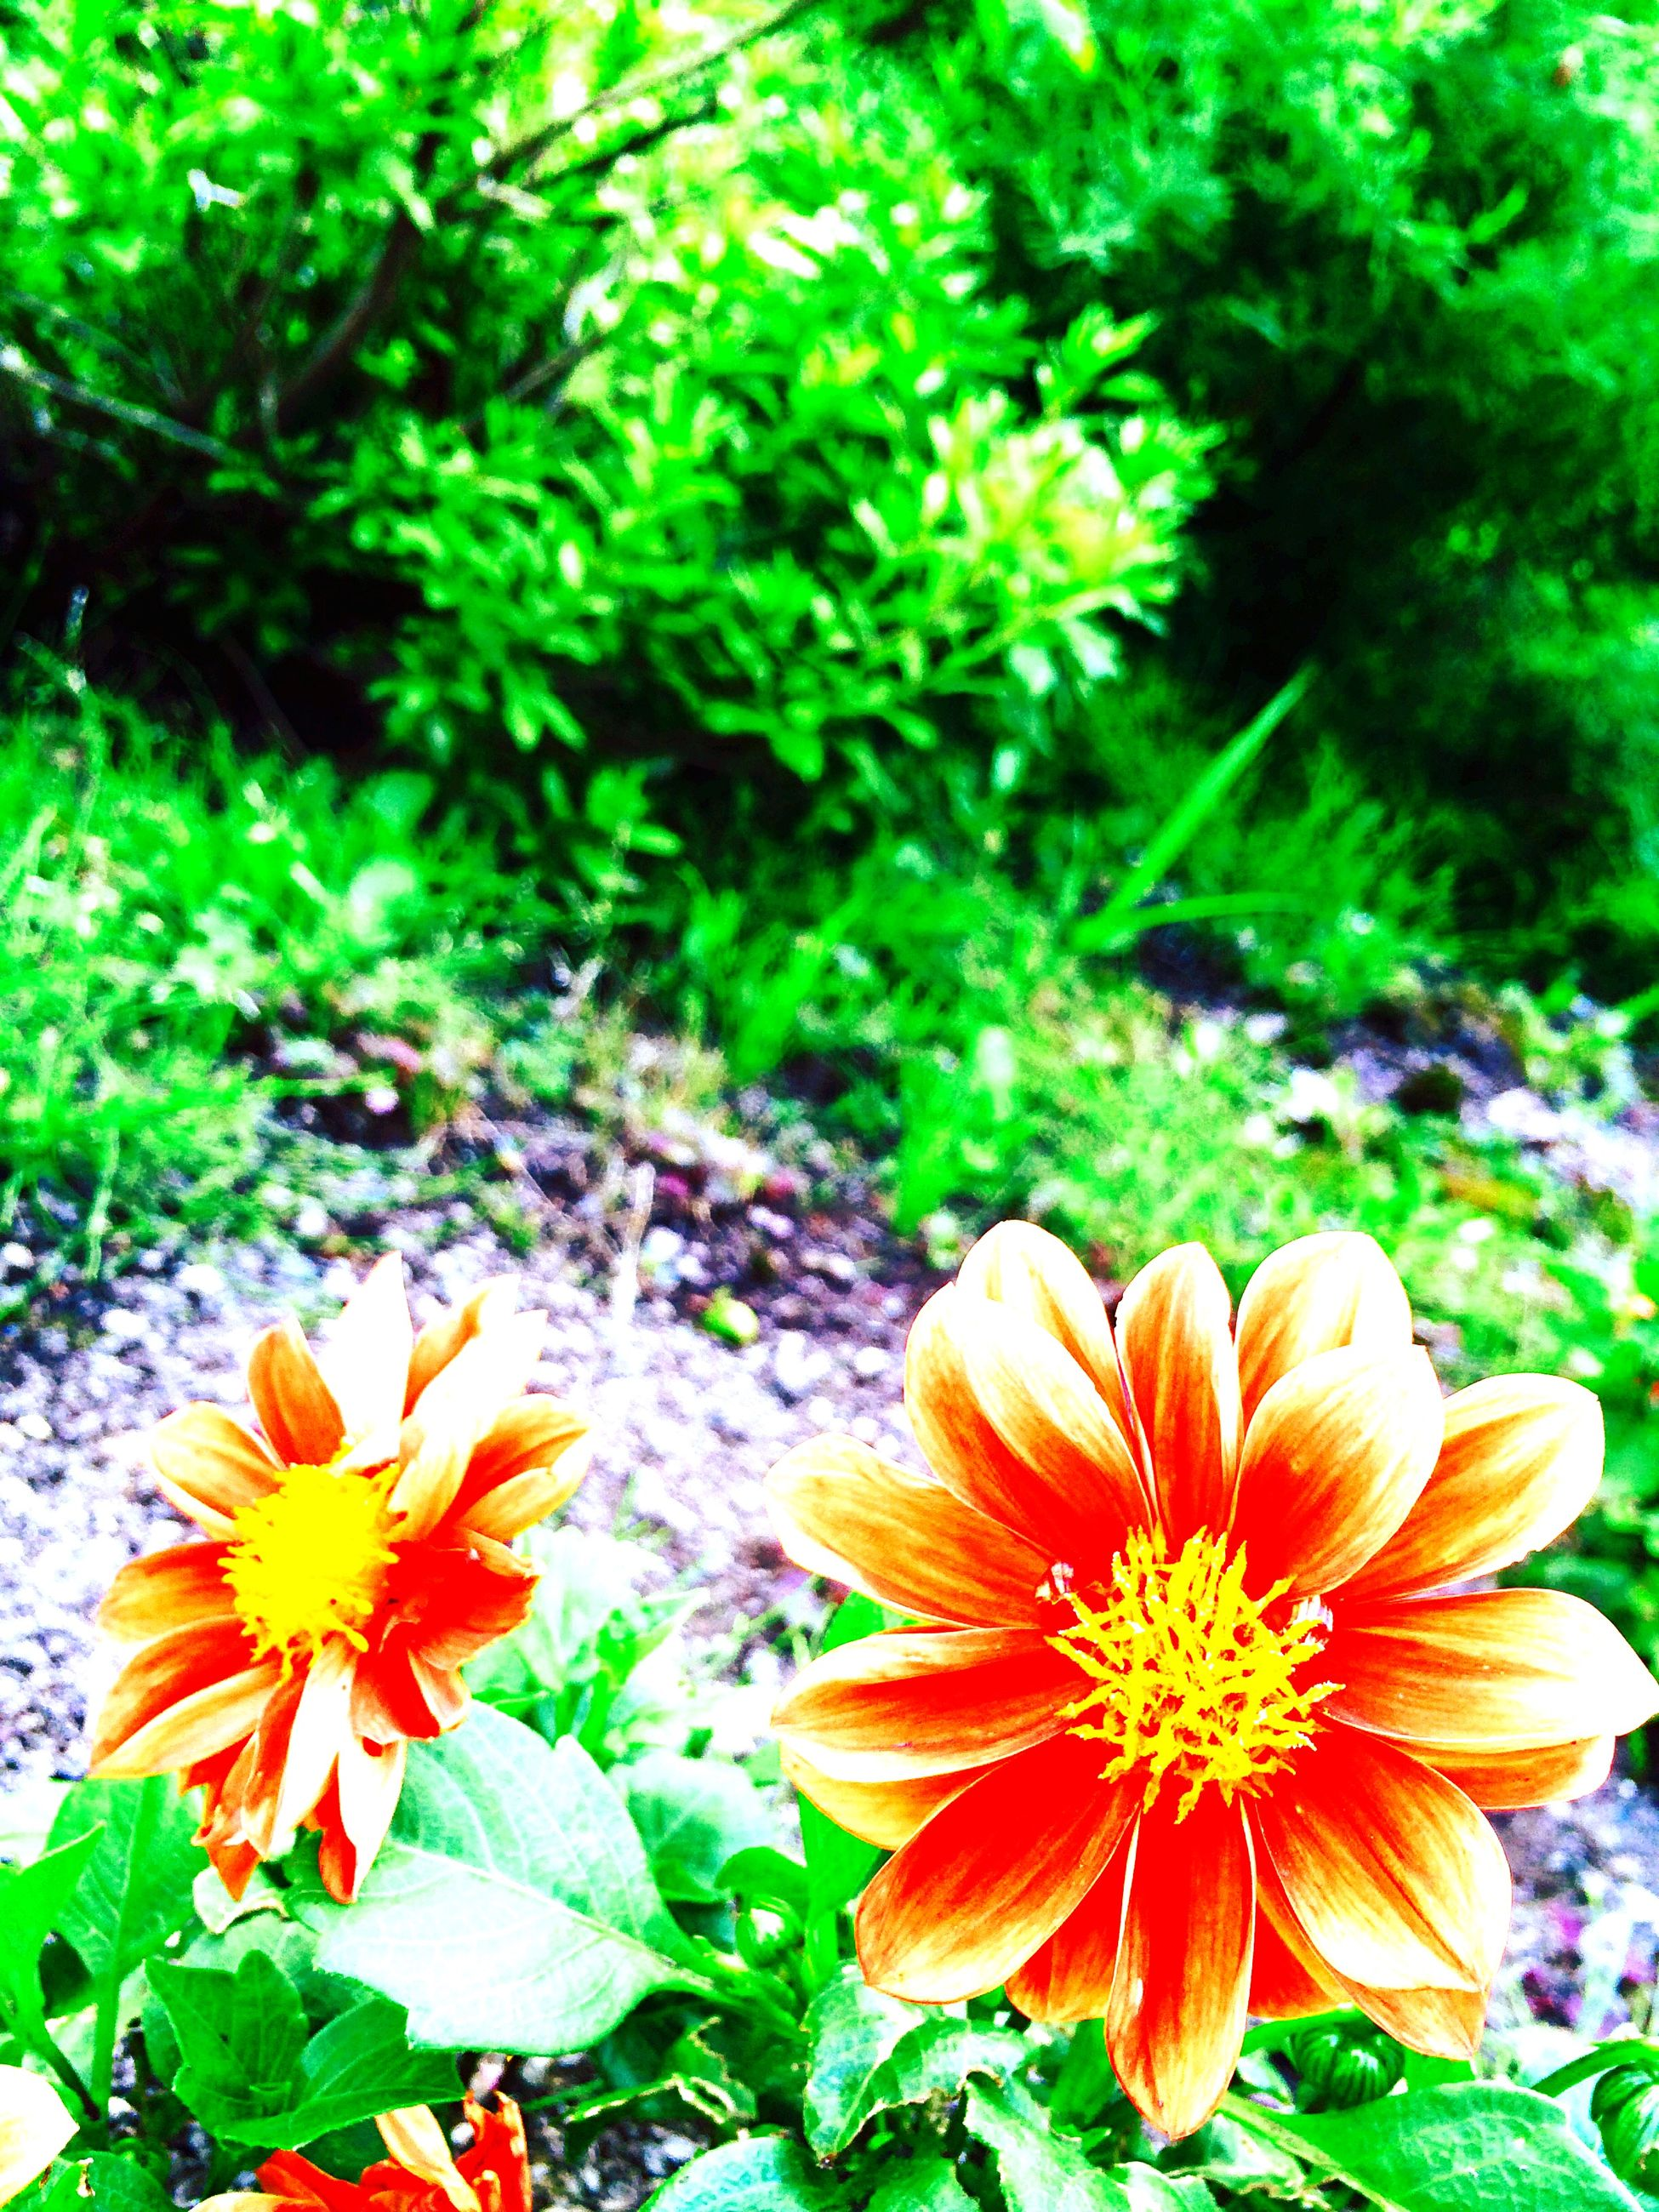 flower, petal, freshness, fragility, flower head, growth, beauty in nature, blooming, plant, nature, yellow, close-up, focus on foreground, high angle view, in bloom, pollen, orange color, green color, park - man made space, field